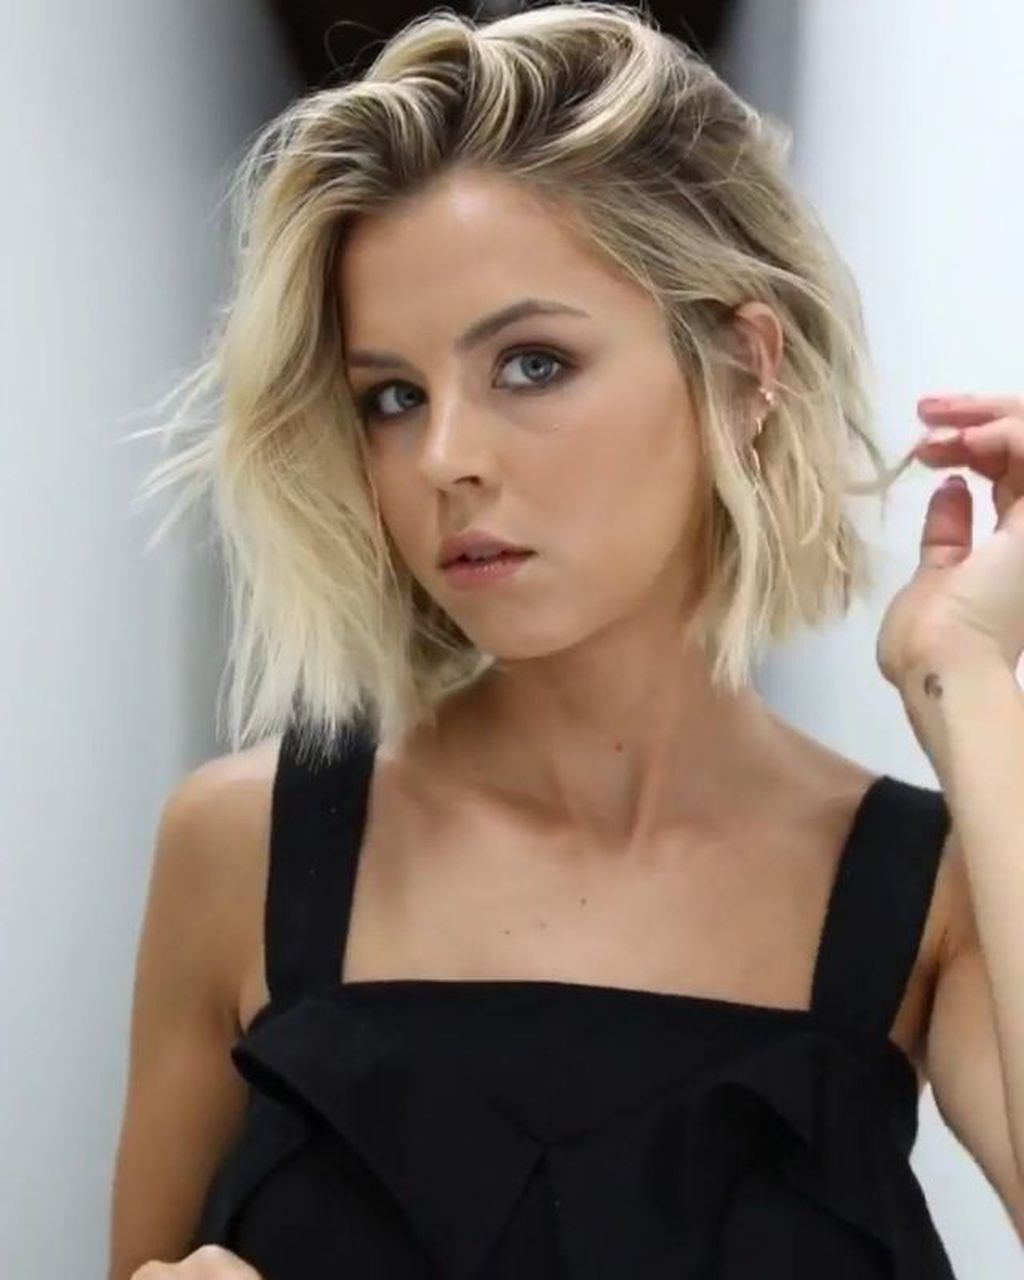 38 The Best Summer Hairstyle Ideas For Women Hair Styles Thick Hair Styles Bob Hairstyles